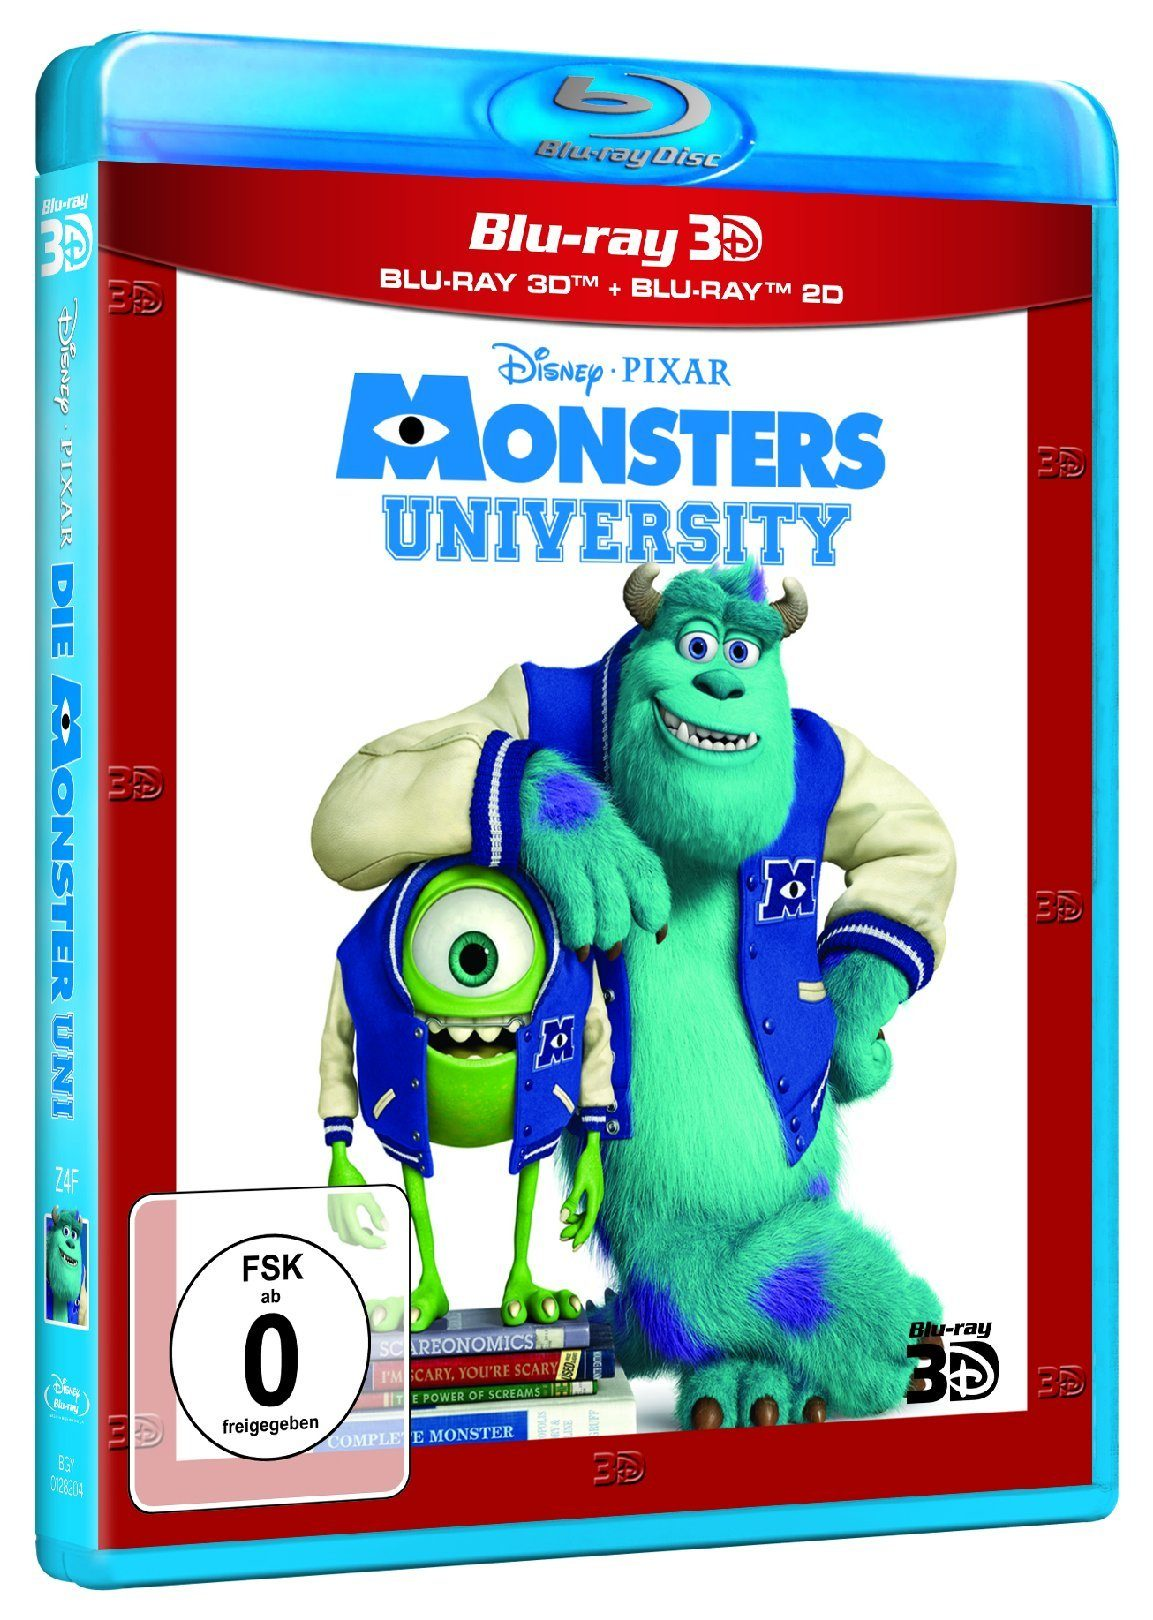 Walt Disney Die Monster Uni 2D/3D »Blu-ray«